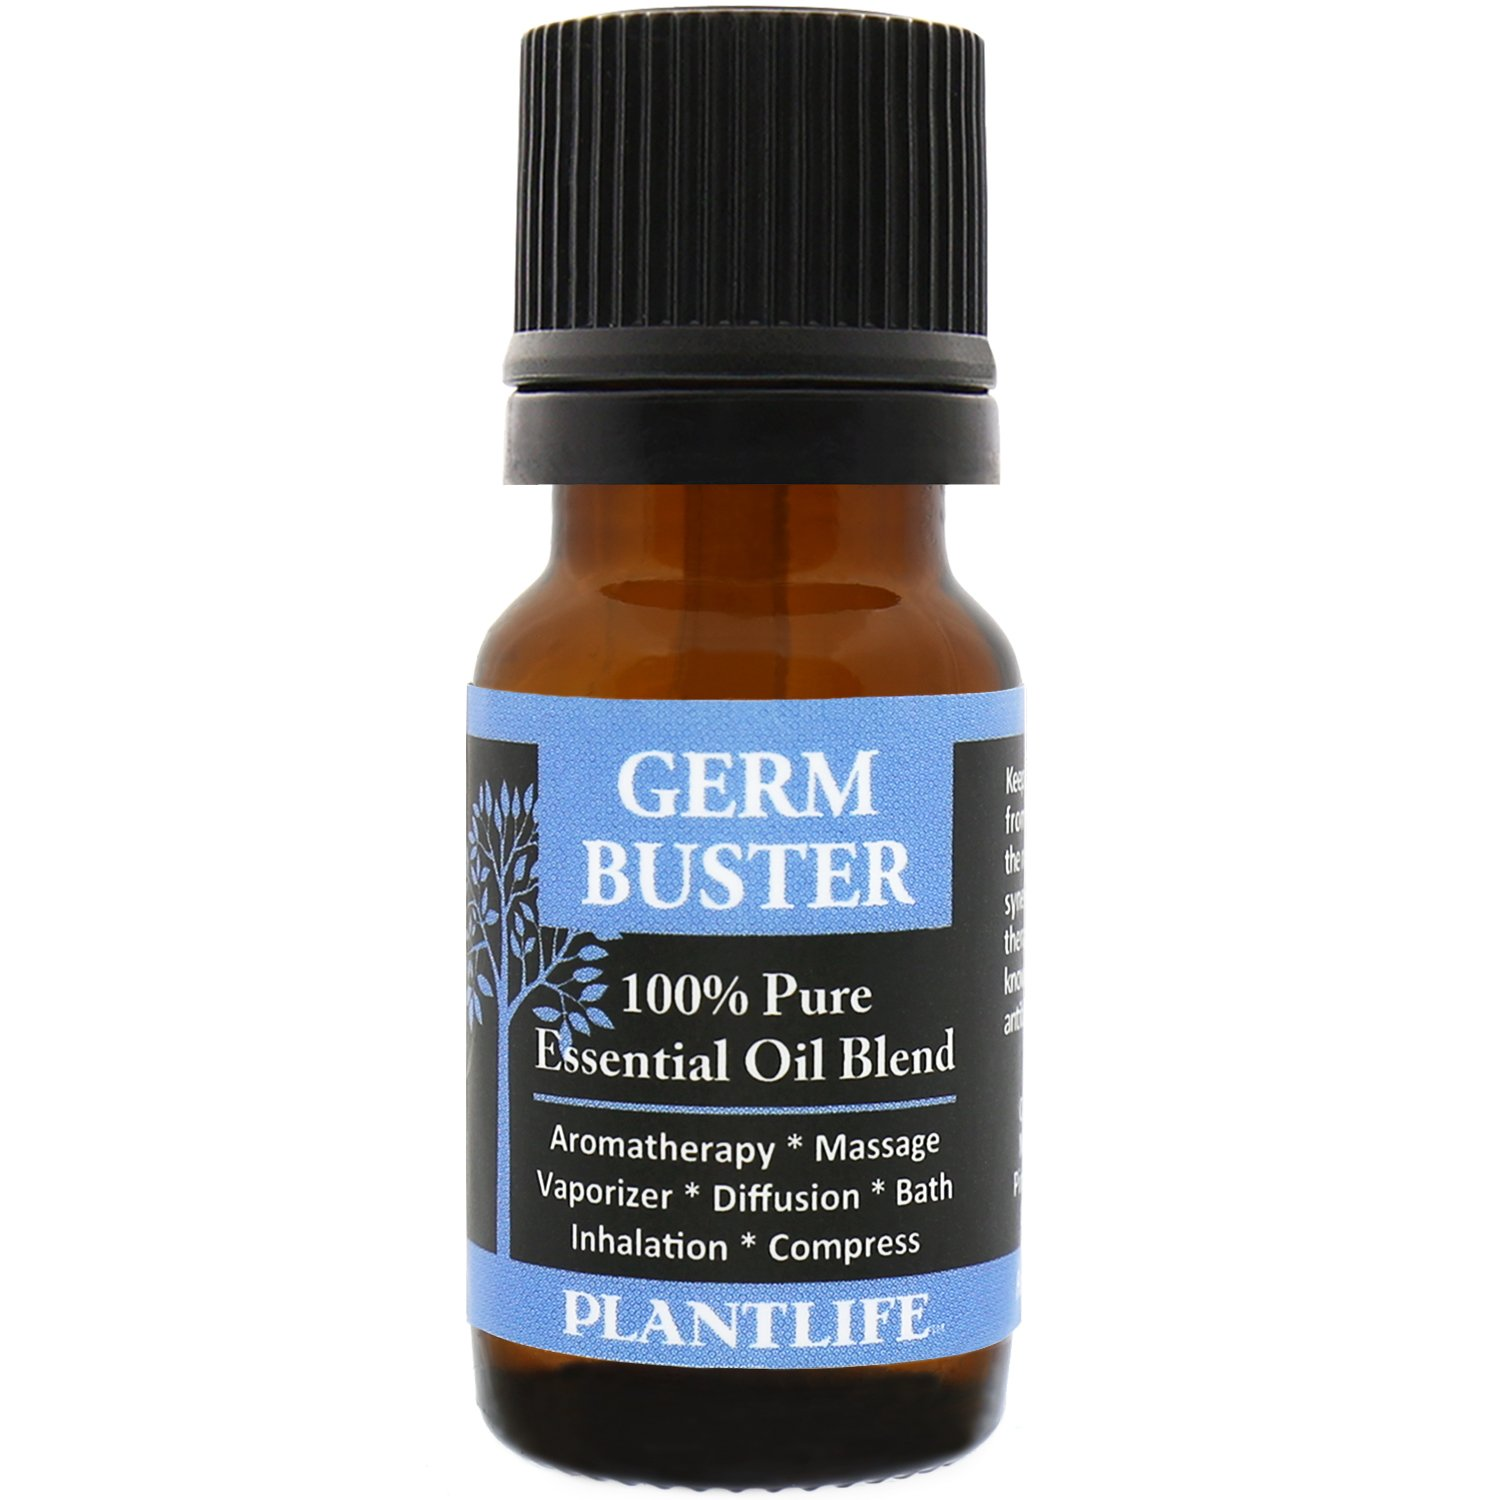 Plantlife Germ Buster Essential Oil Blend (100% Pure and Natural, Therapeutic Grade) from Plantlife